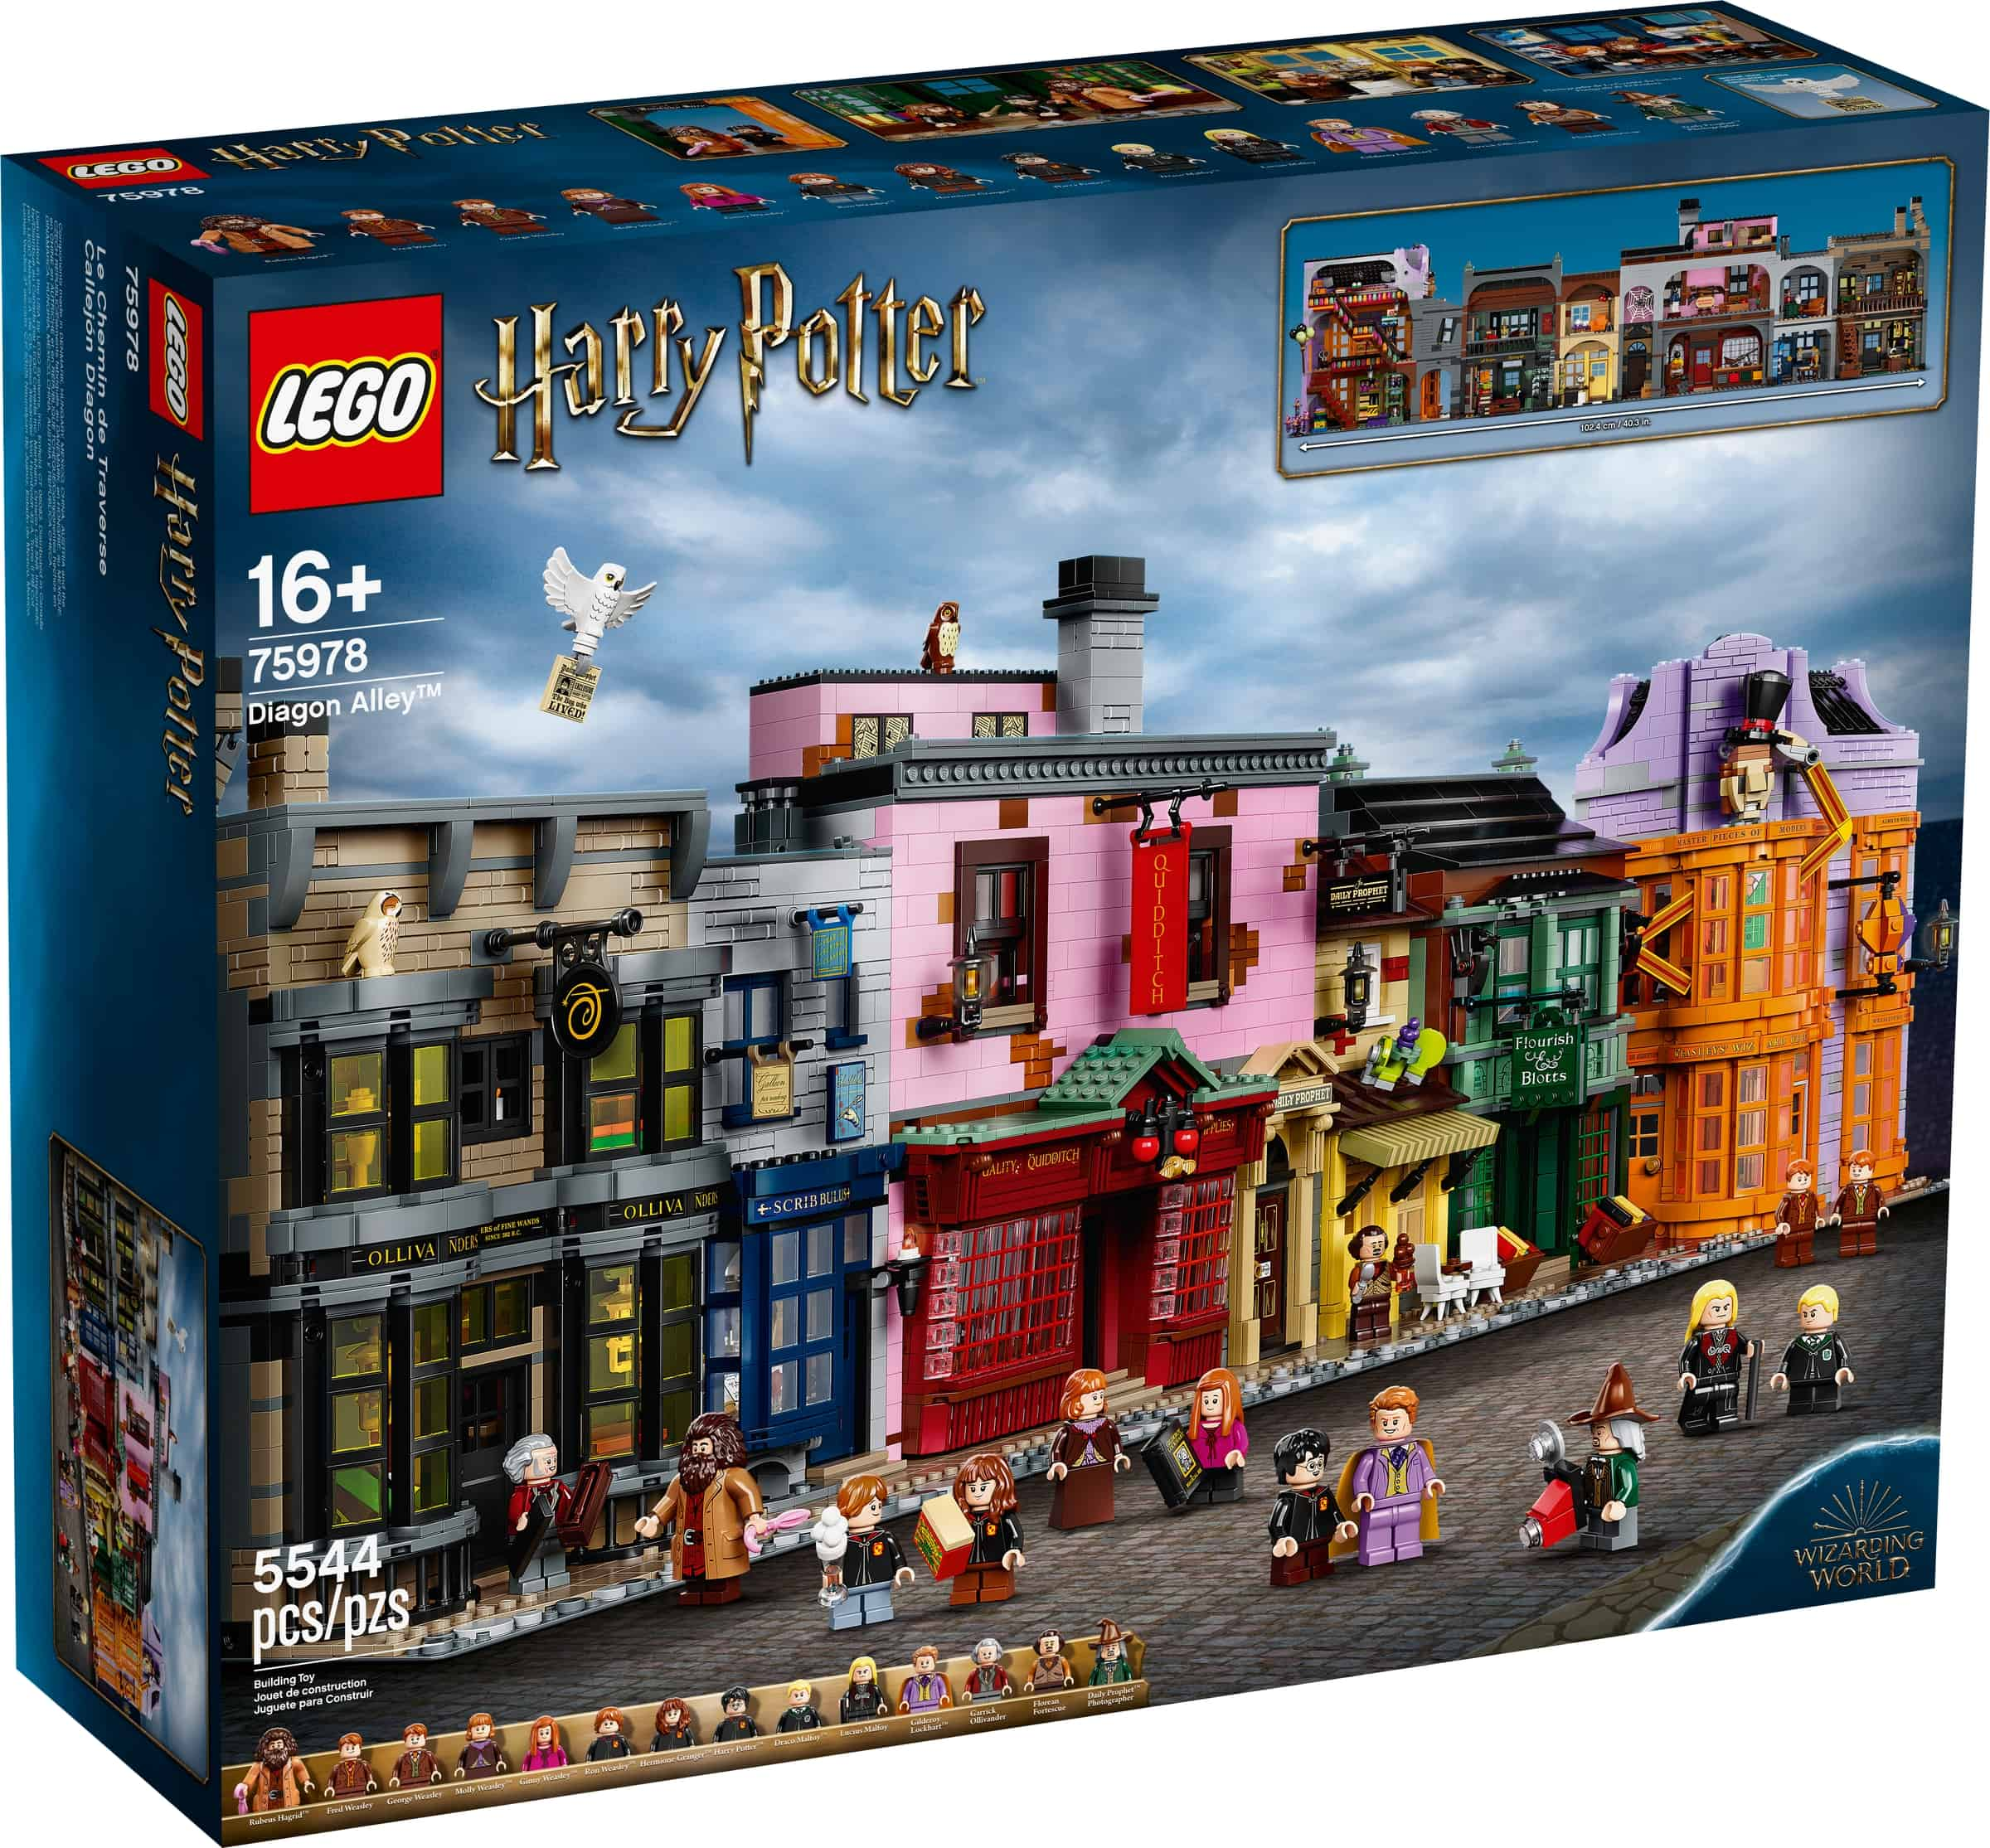 LEGO 75978 Diagon Alley